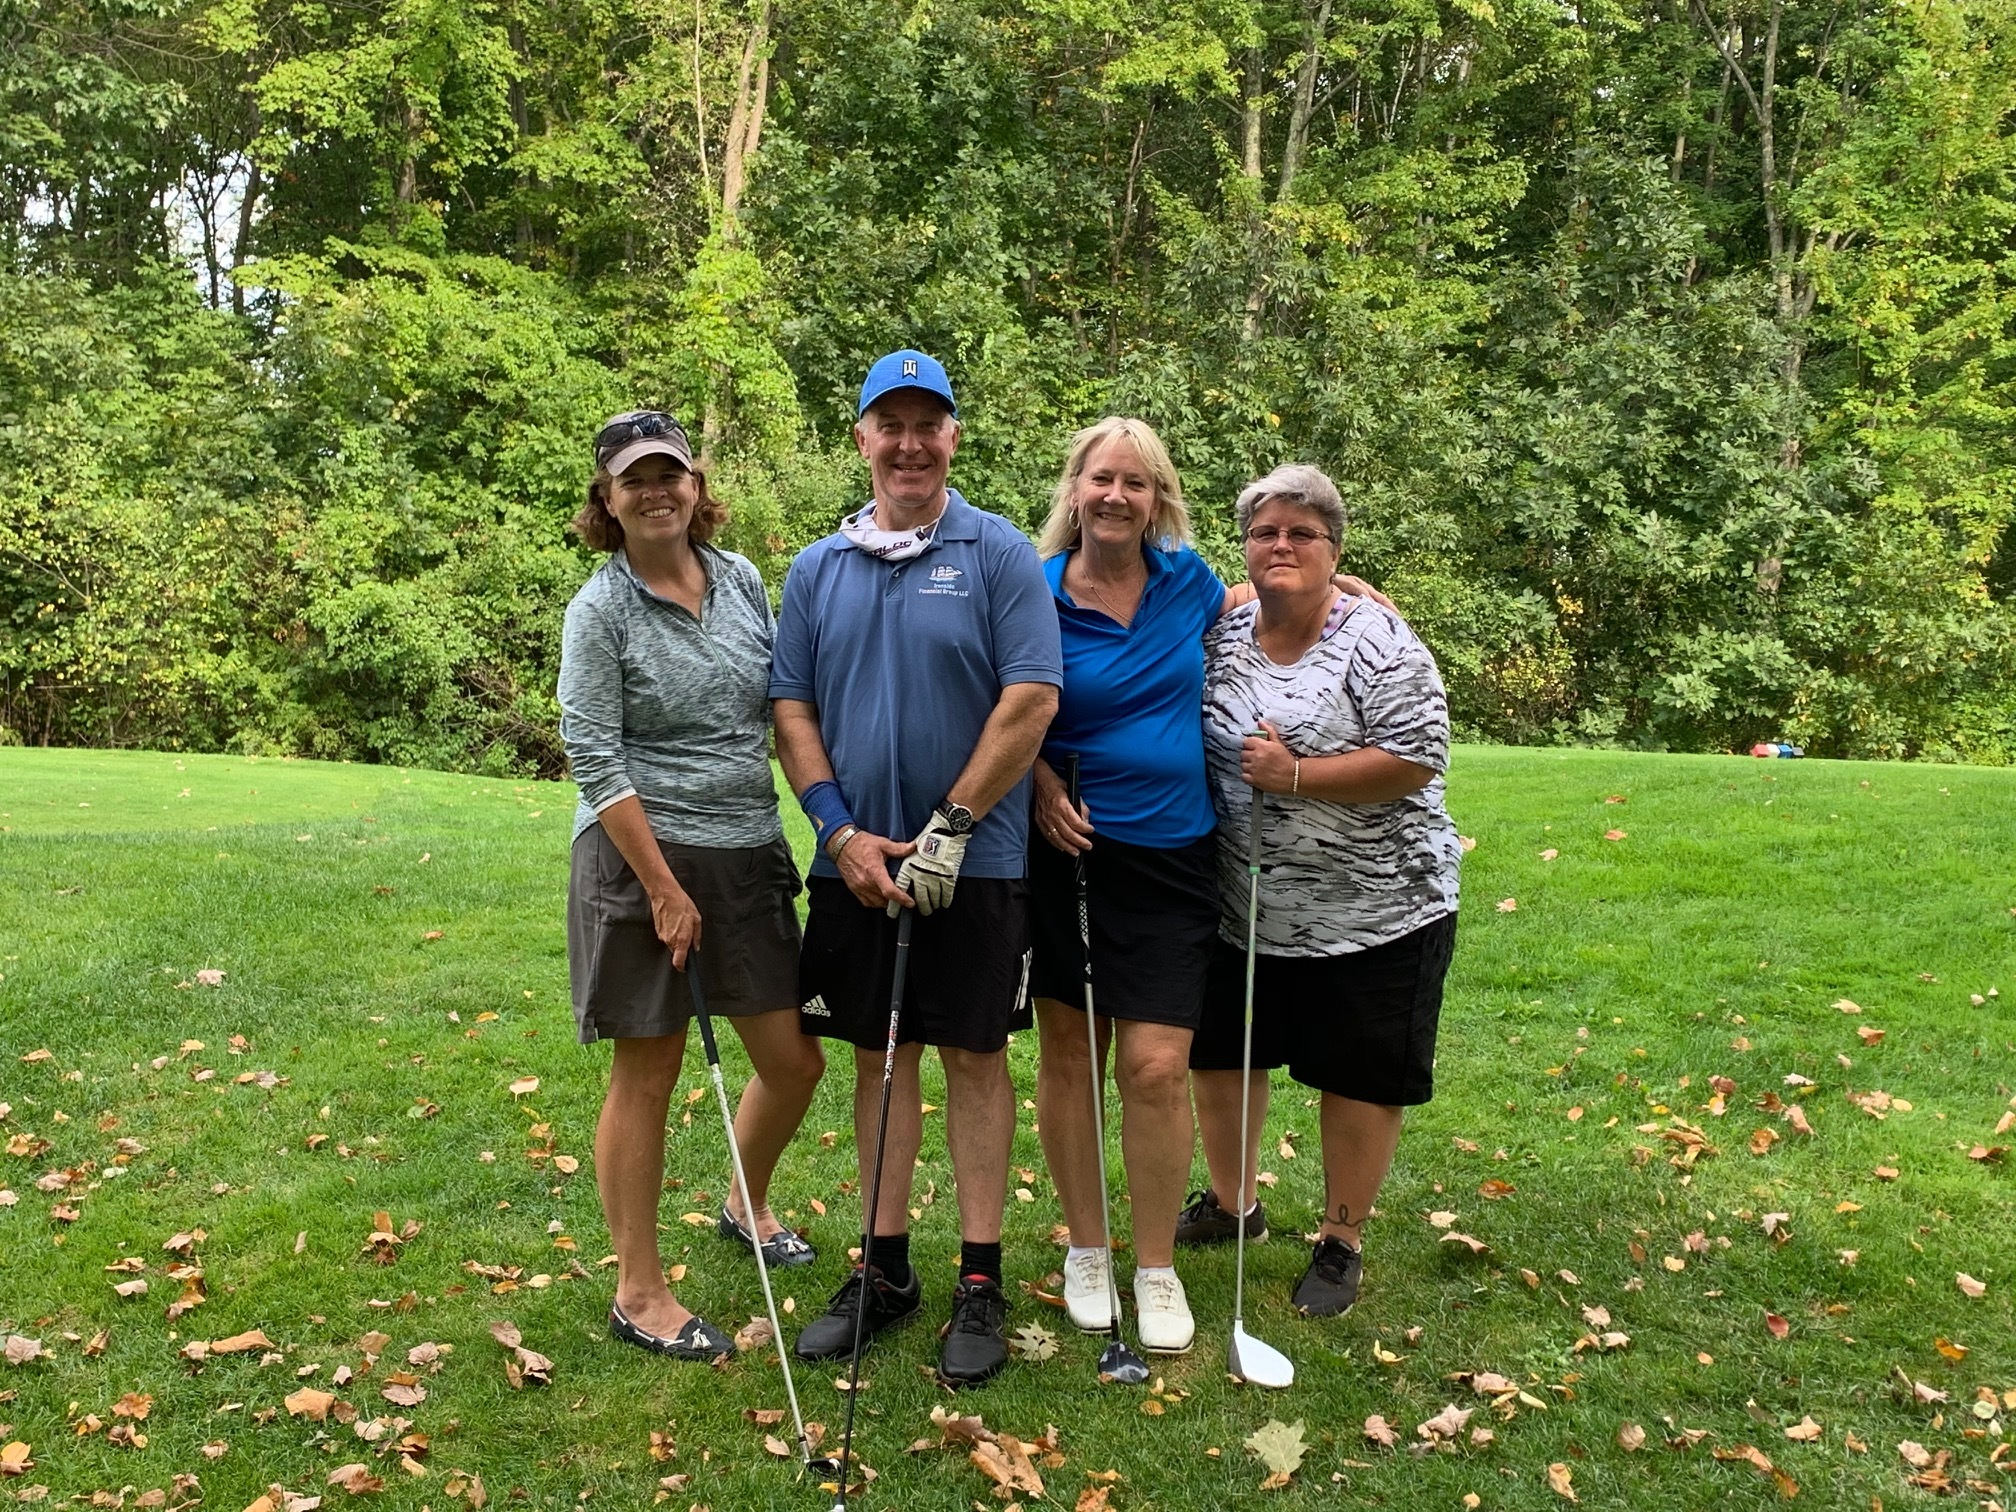 THE 28TH ANNUAL CATALDO SWING FORE HOPE GOLF TOURNAMENT gallery image #7